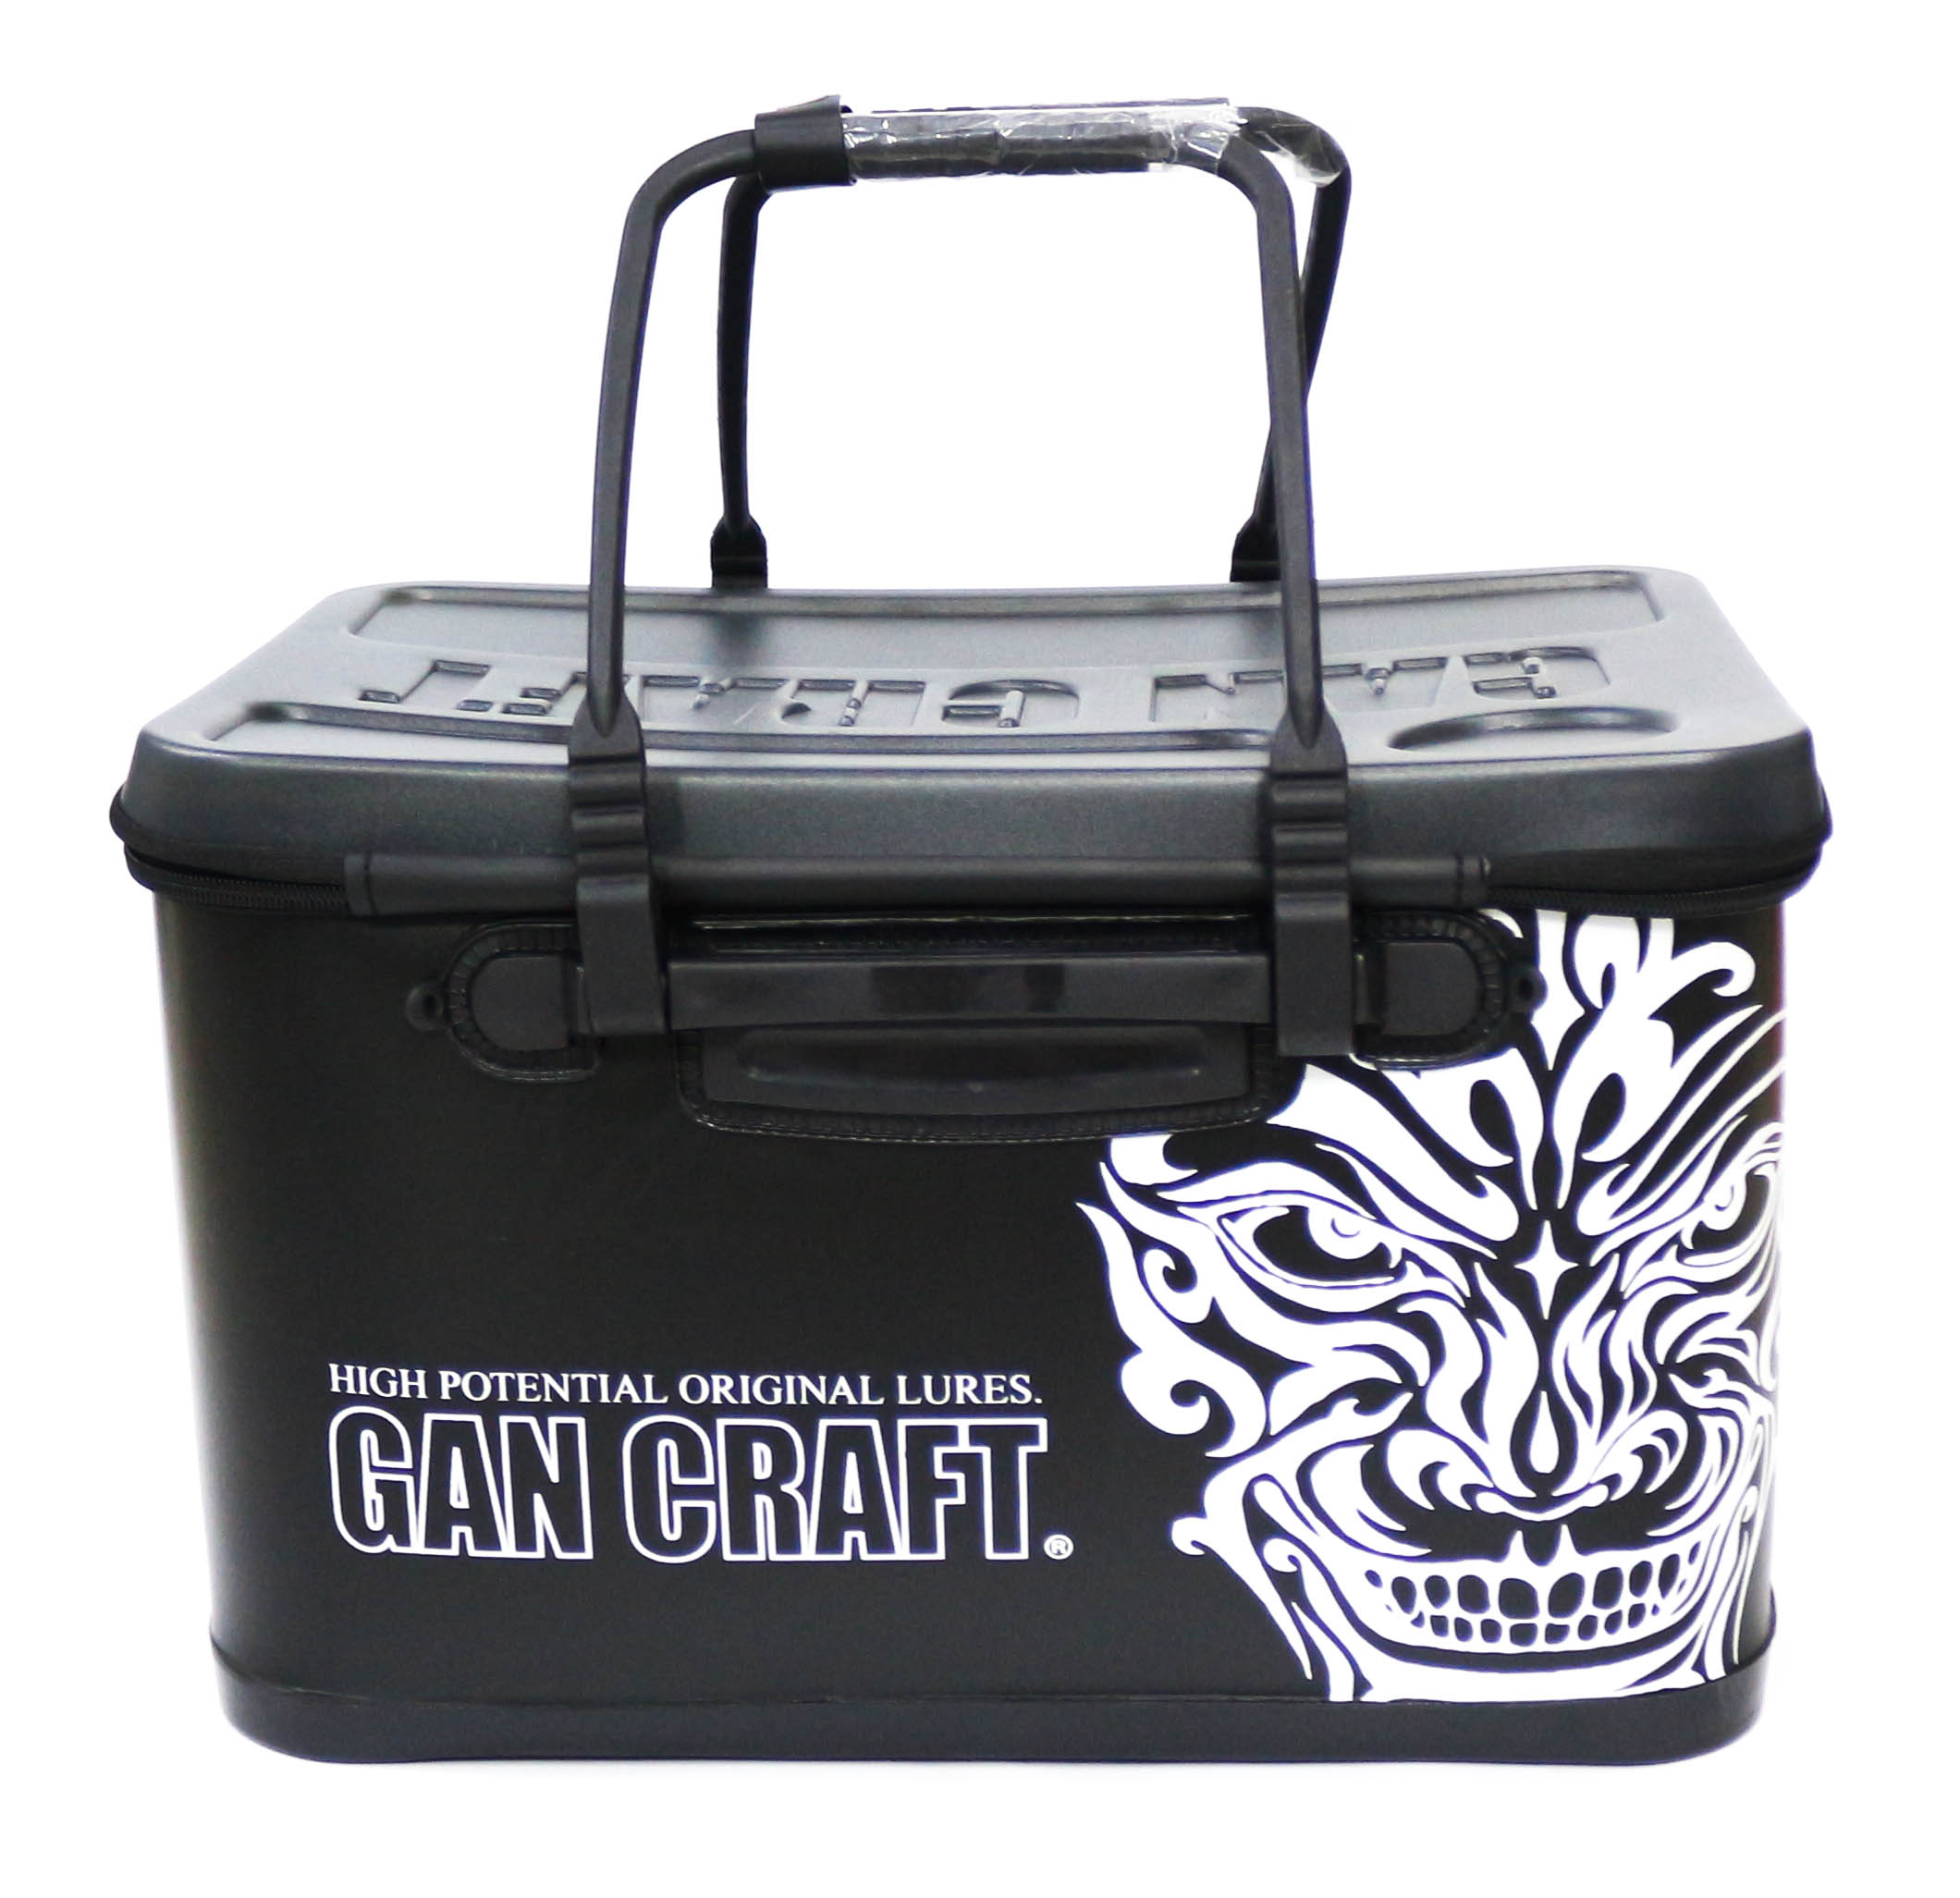 Gan Craft GB42 Version II Tackle Bag Bakkan 420 x 320 x 360 mm Black (7376)